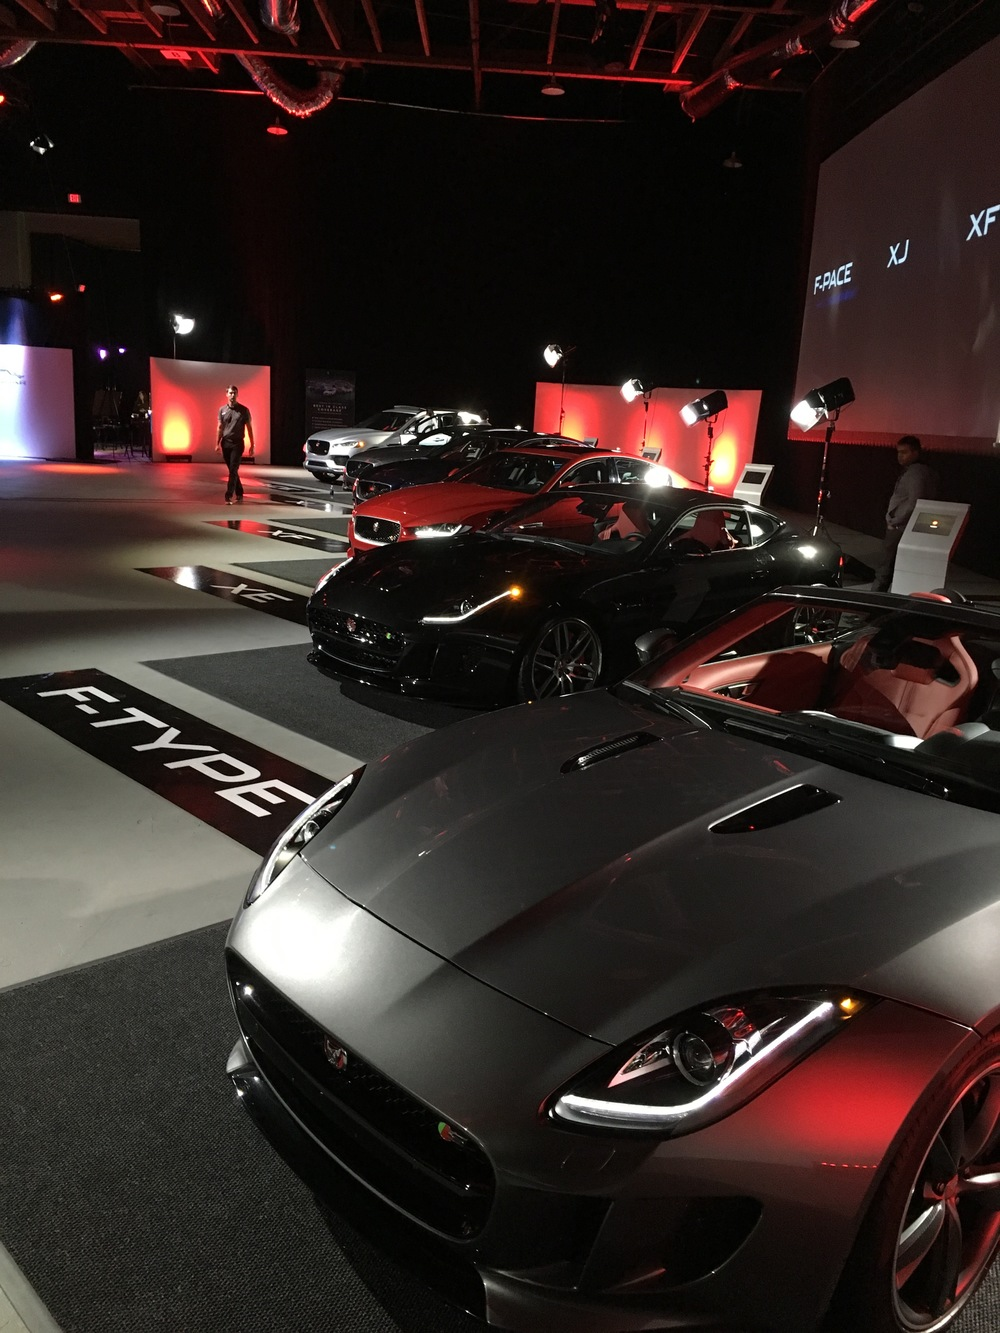 The entire line-up of Jaguars on display -- including the brand new F-PACE SUV and XE sports sedan.